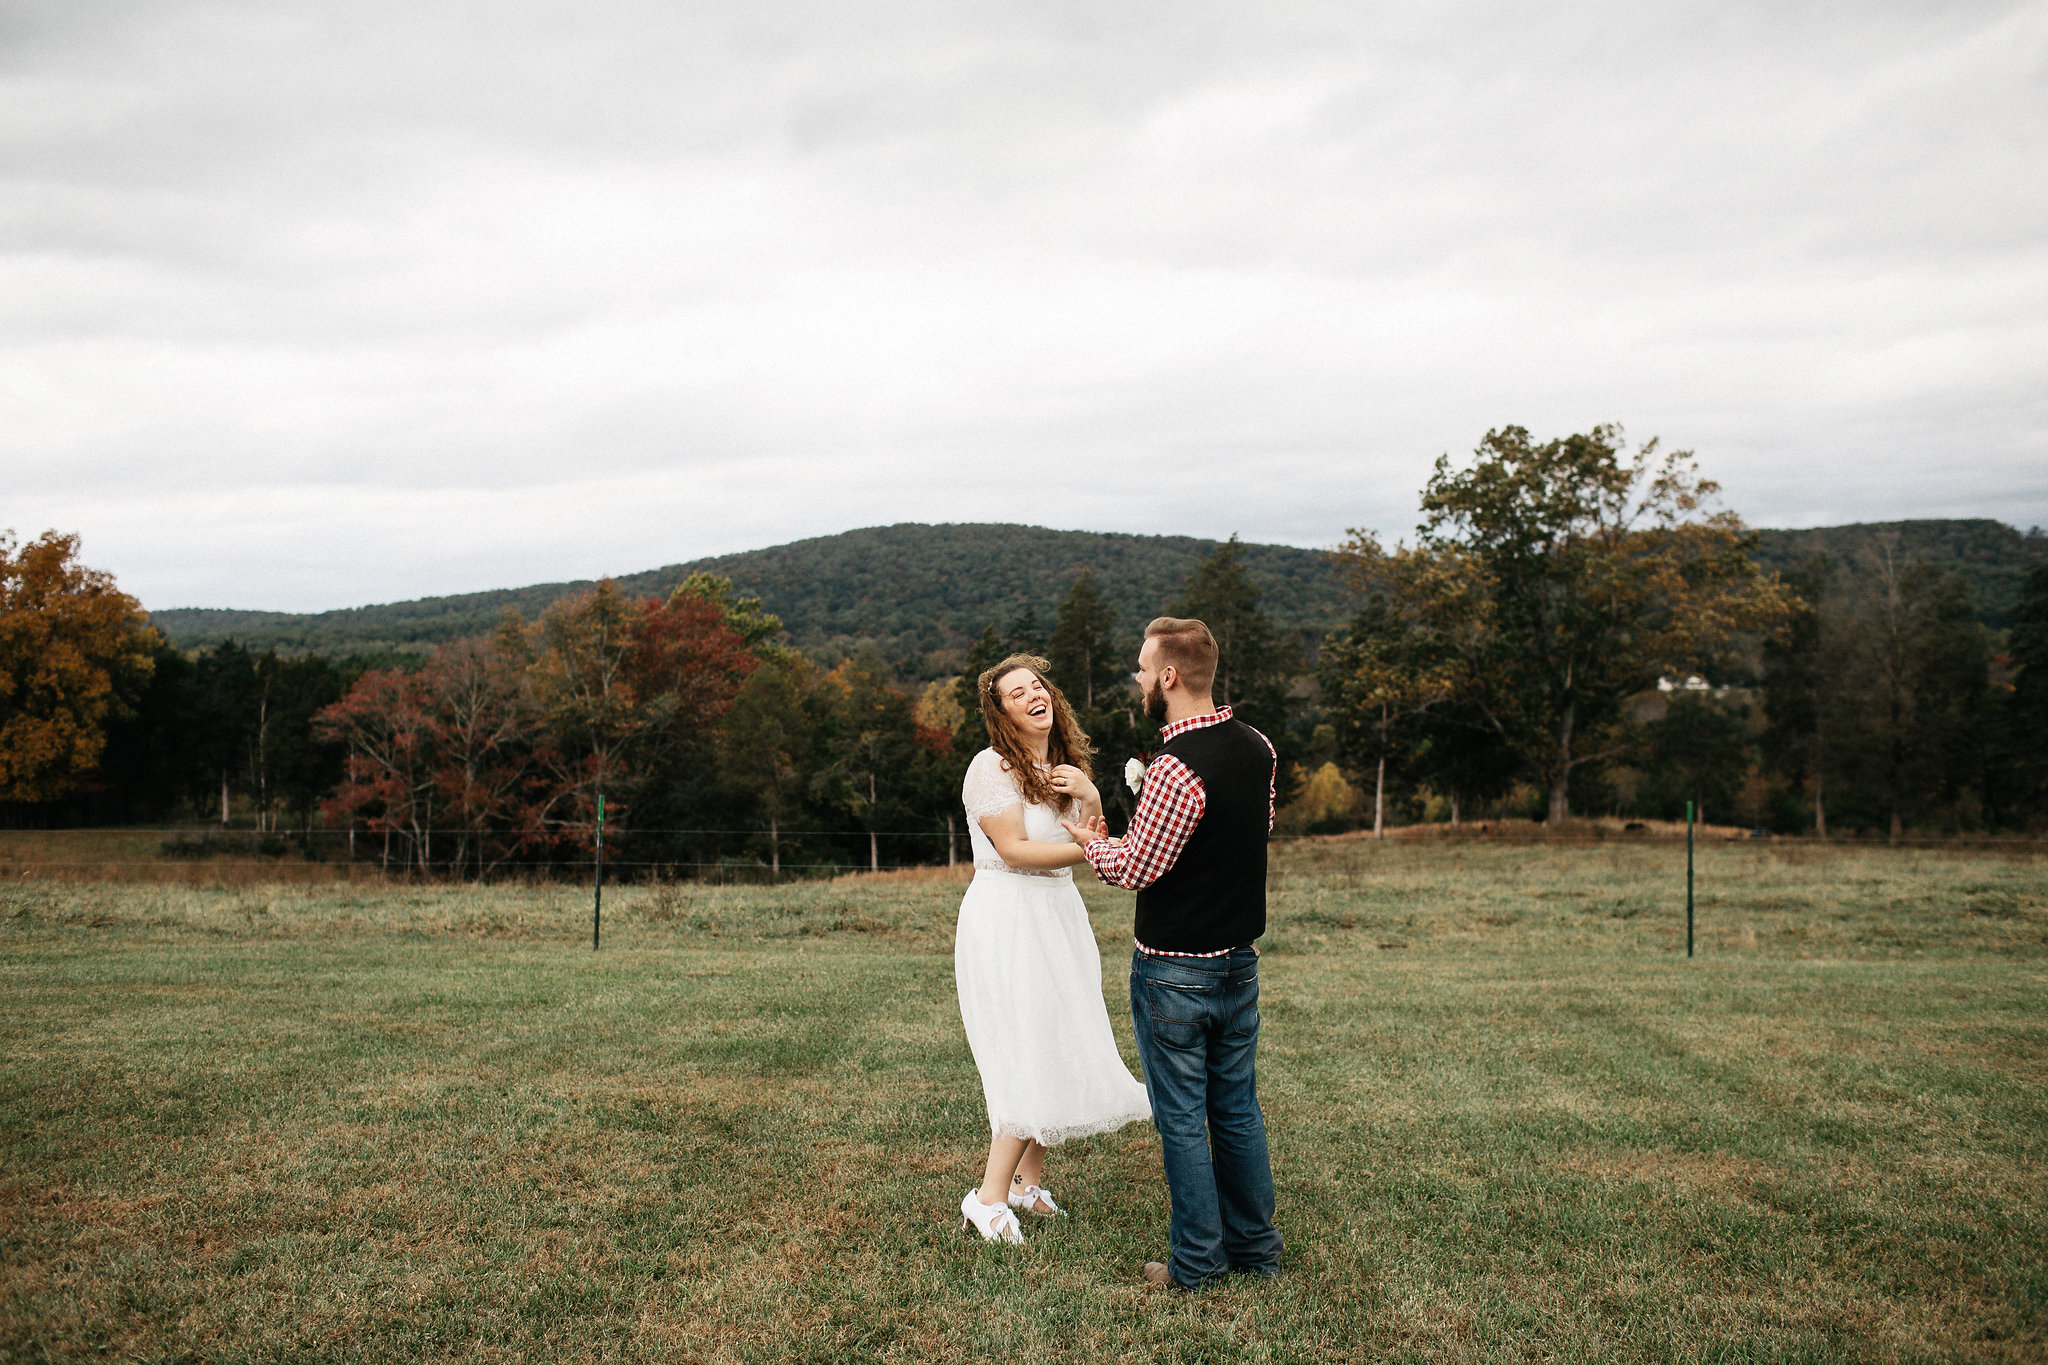 Caitlin&CodyMarried2017-11-03at19.19.40PM46.jpg